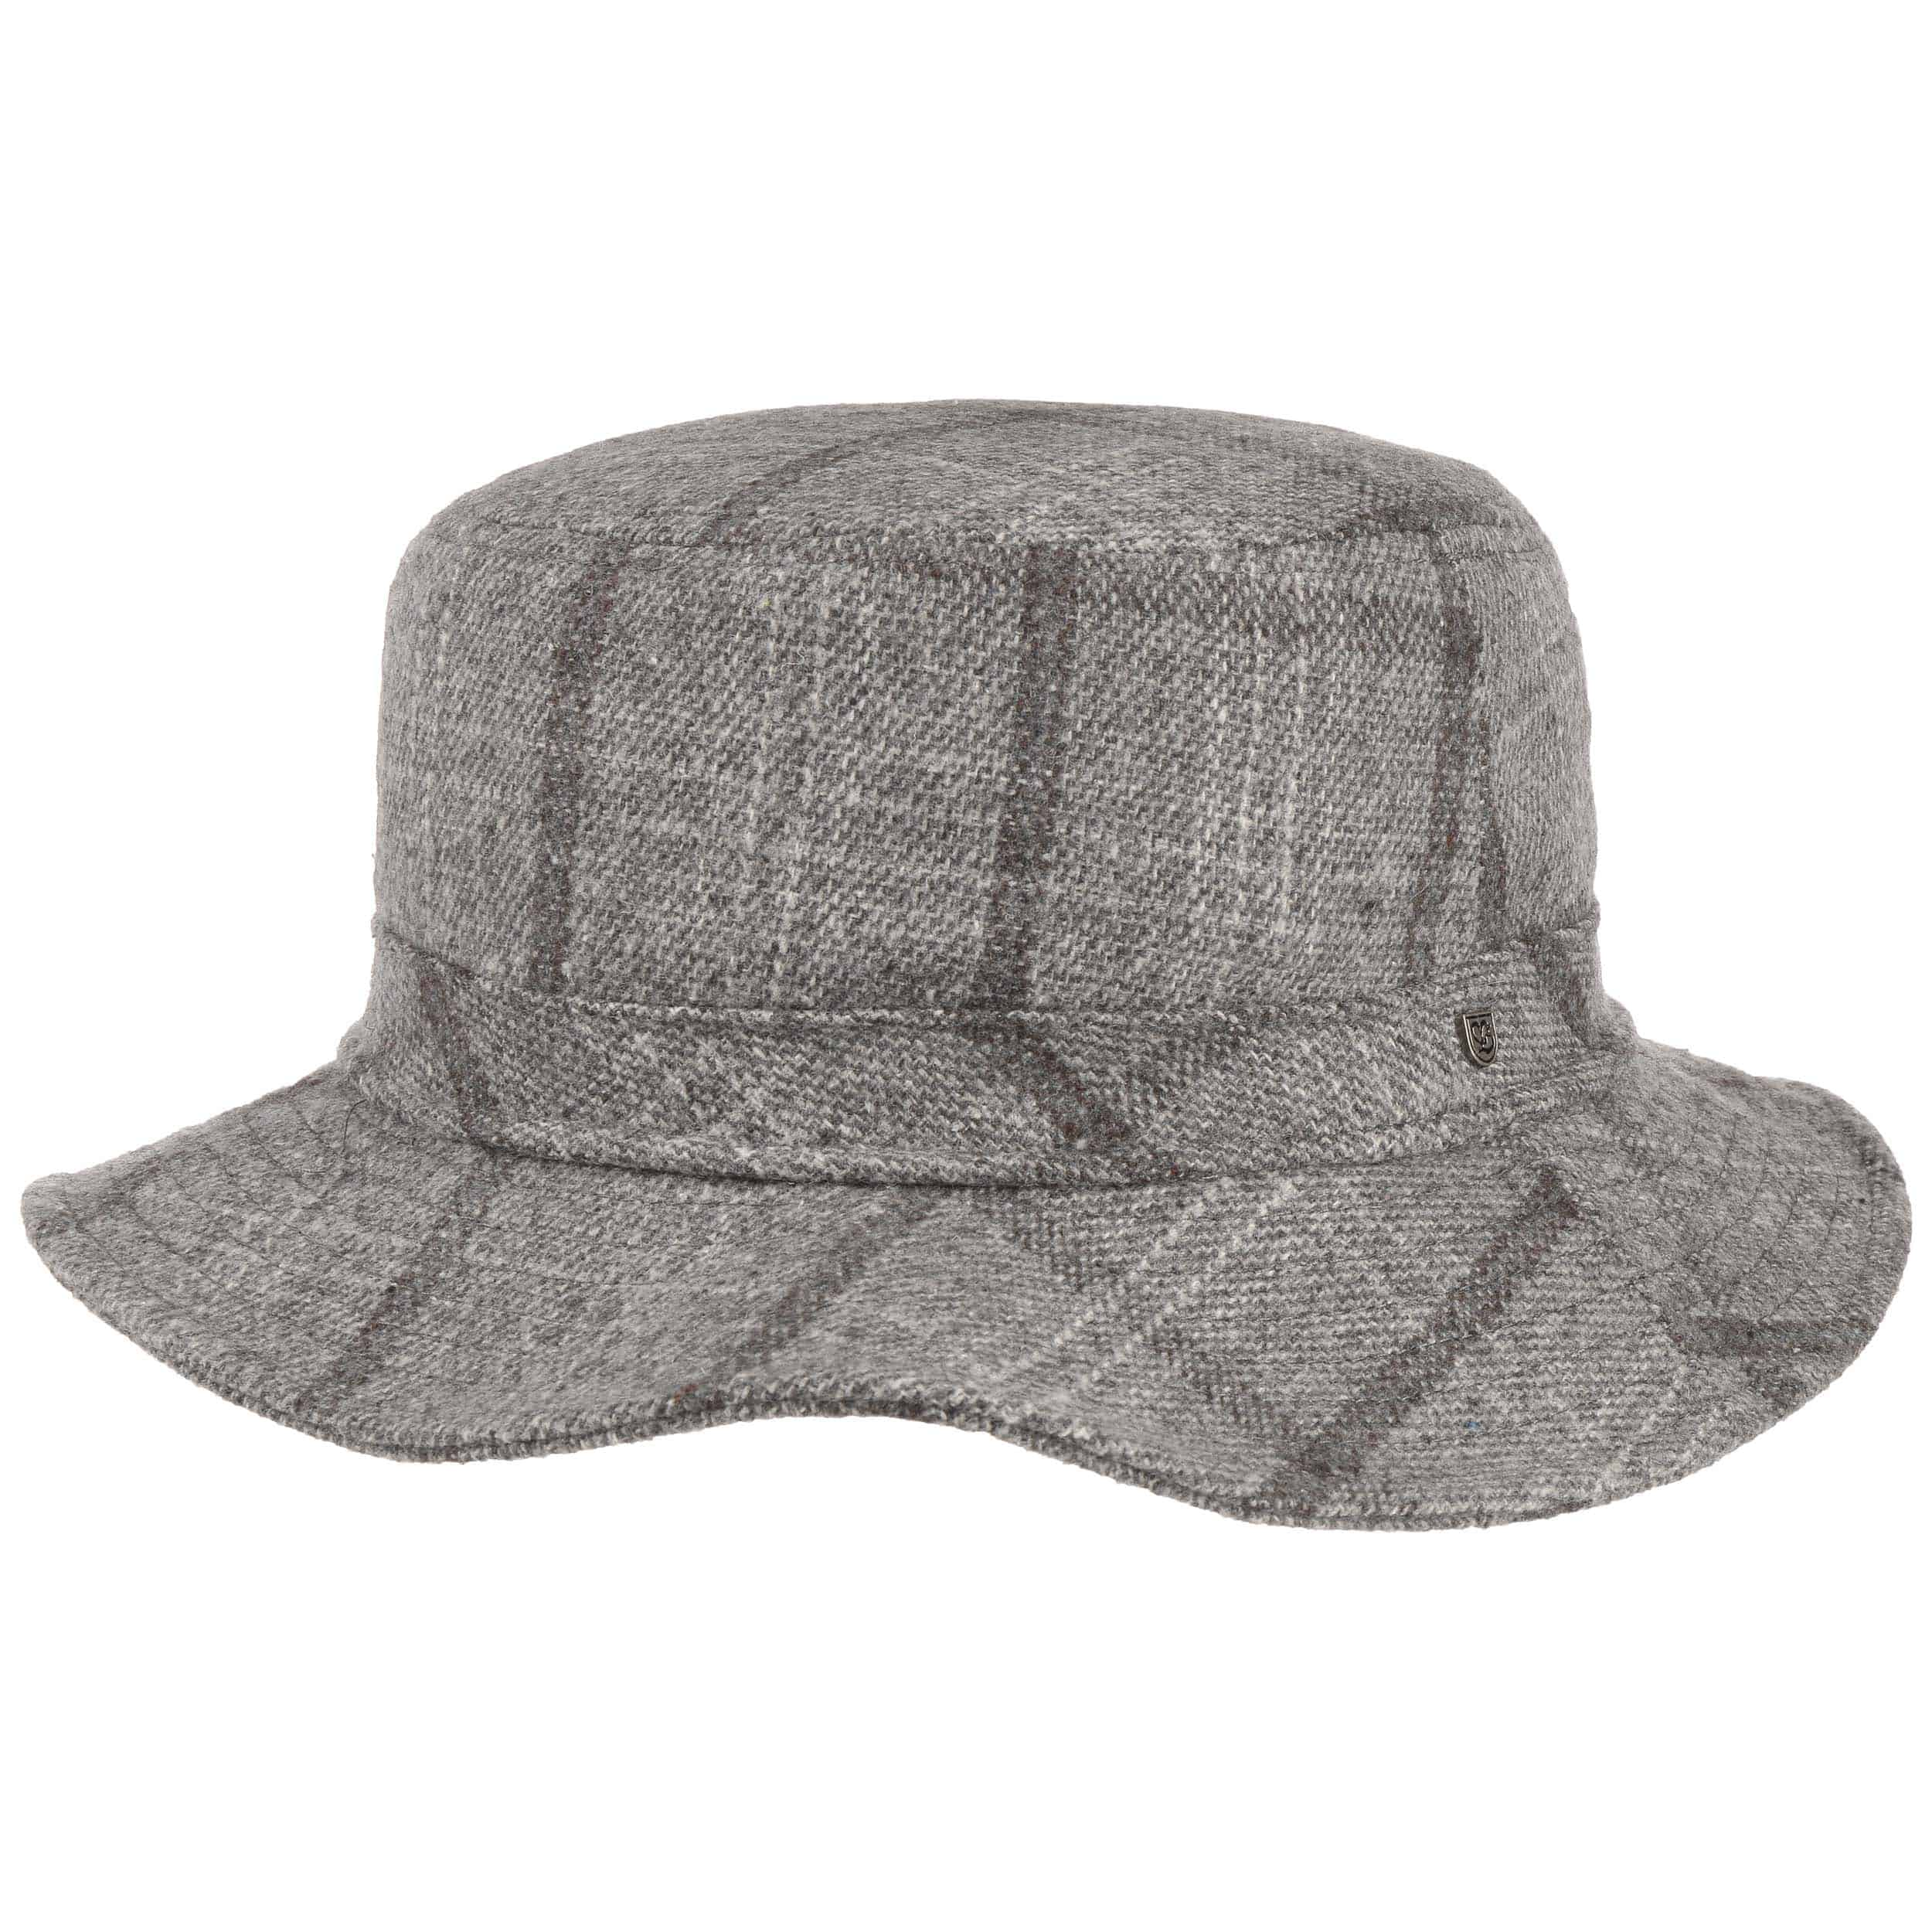 a2c687e6e923b ... australia womens bucket hat by brixton grey 5 8e7e1 59015